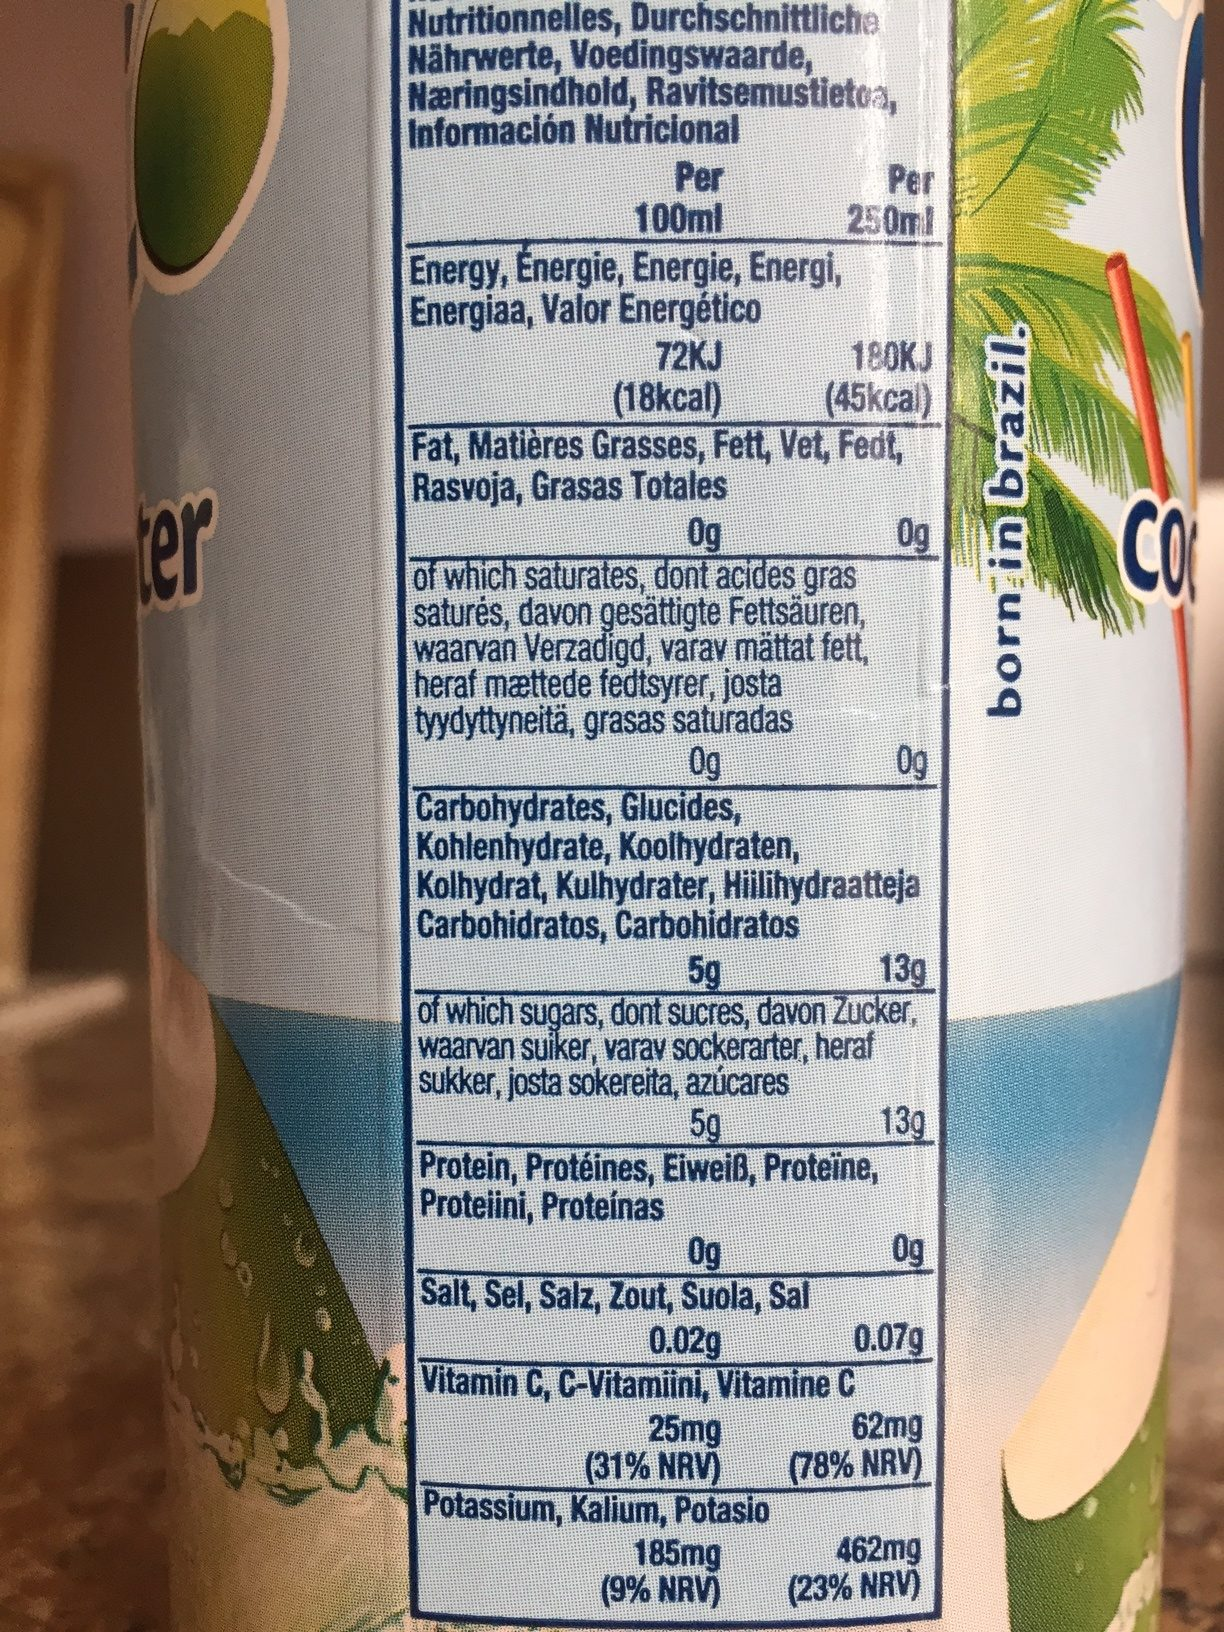 COCO - Nutrition facts